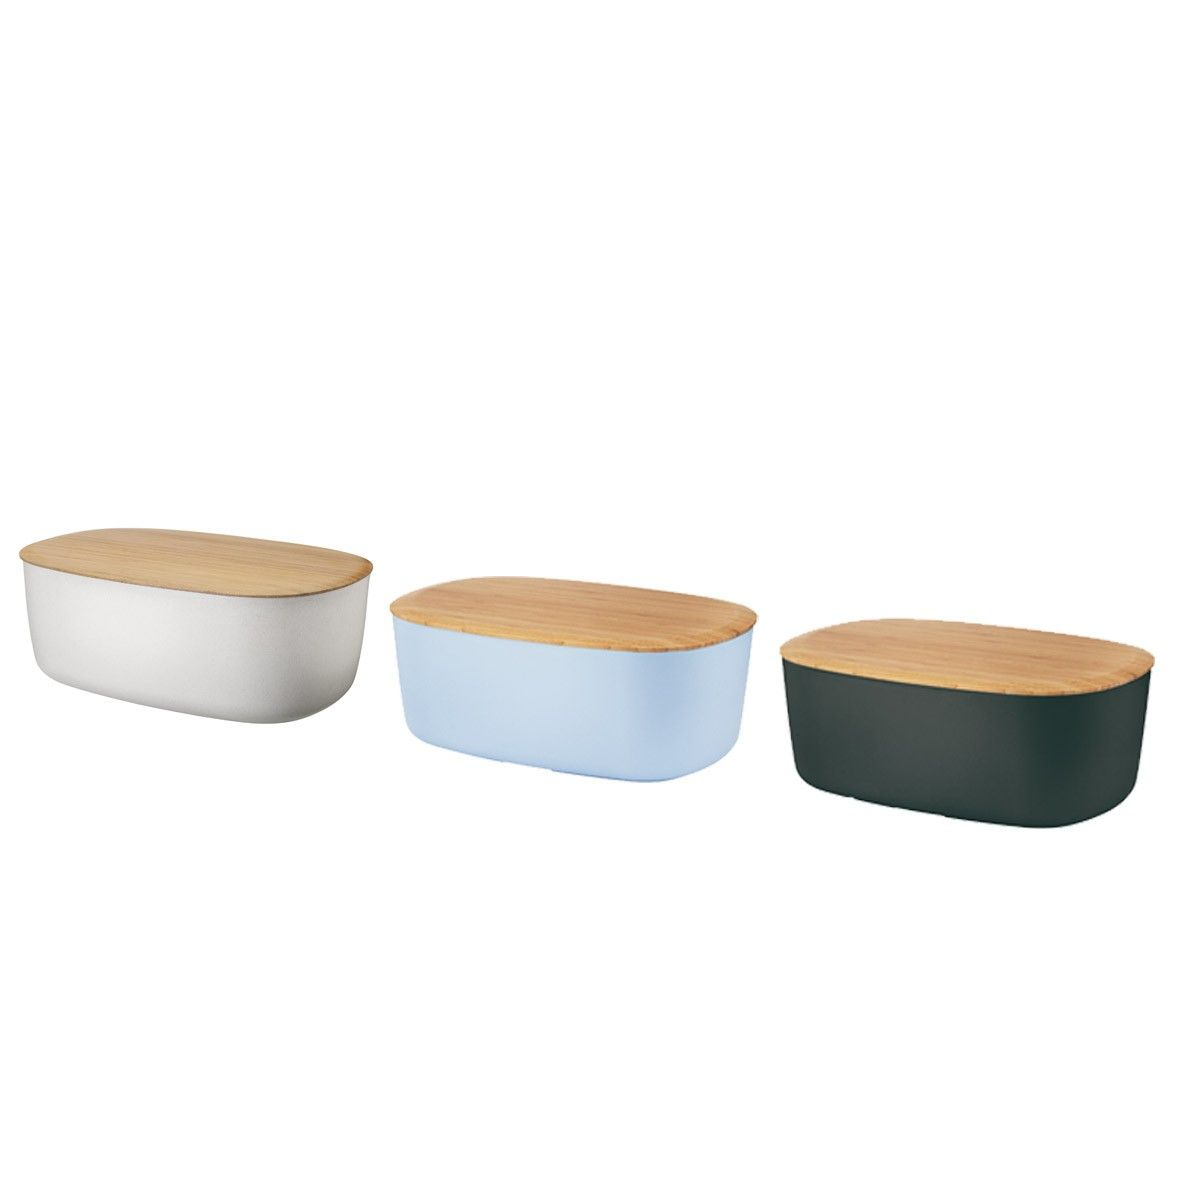 Stelton Brotkasten brotkasten rigtig by stelton home accessoires furniture